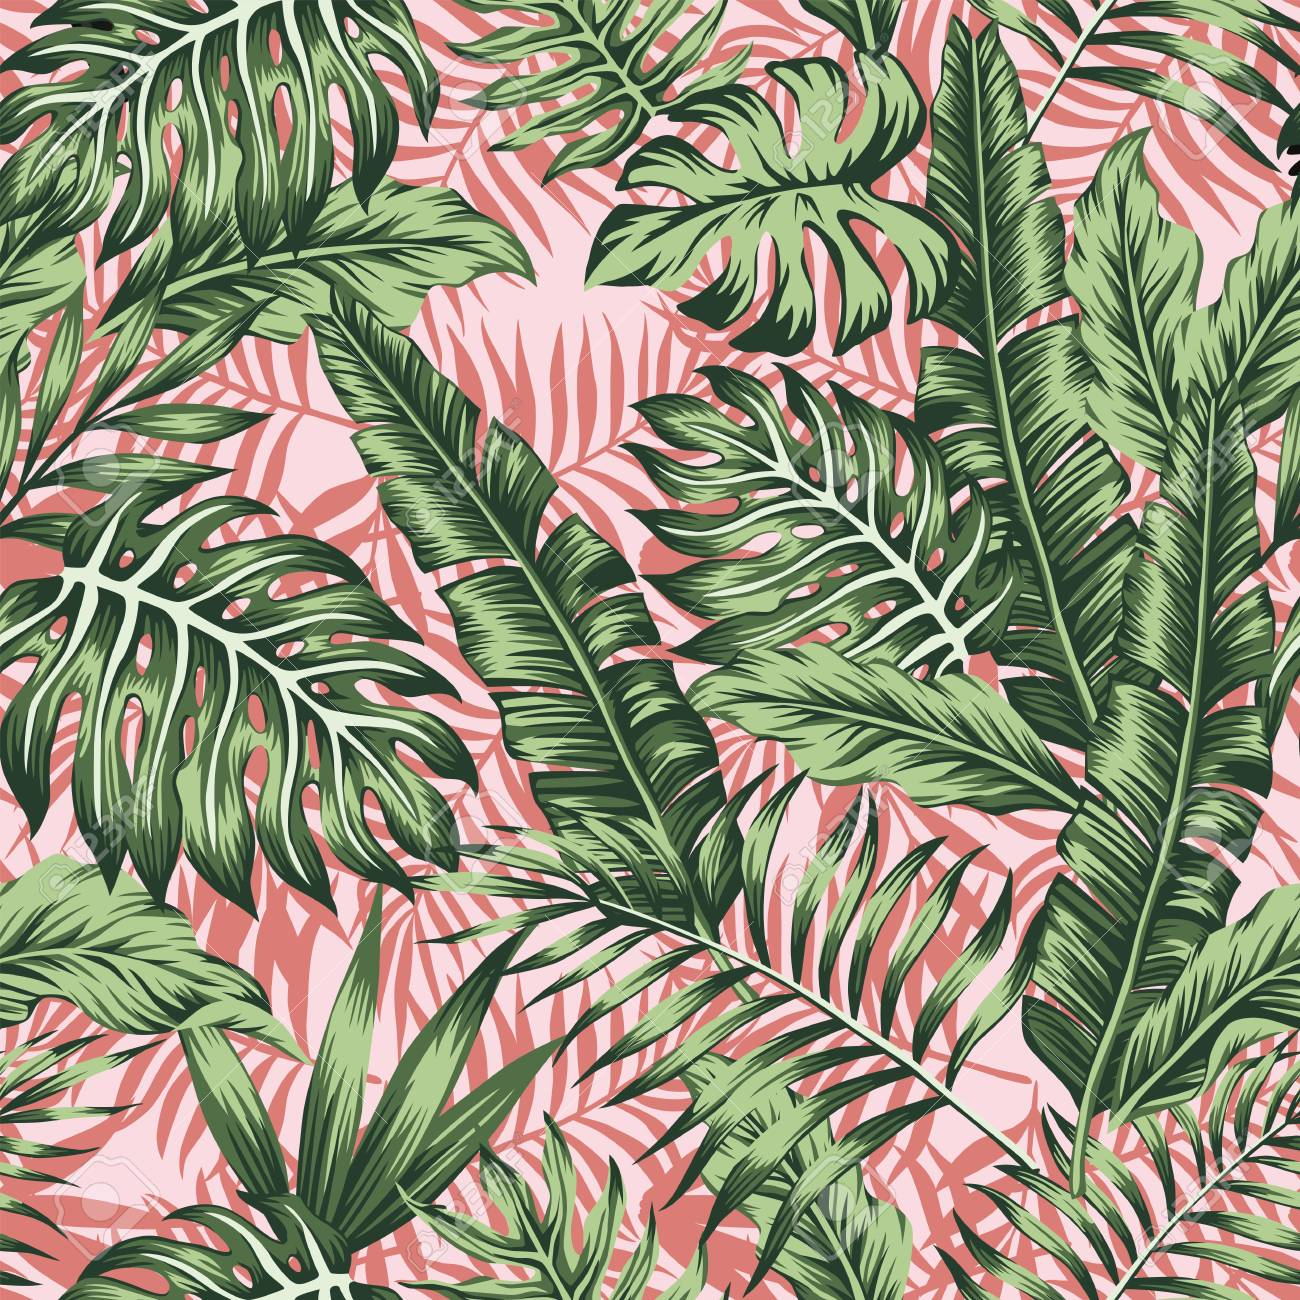 Tropical green leaves jungle pink plants background - 99995217